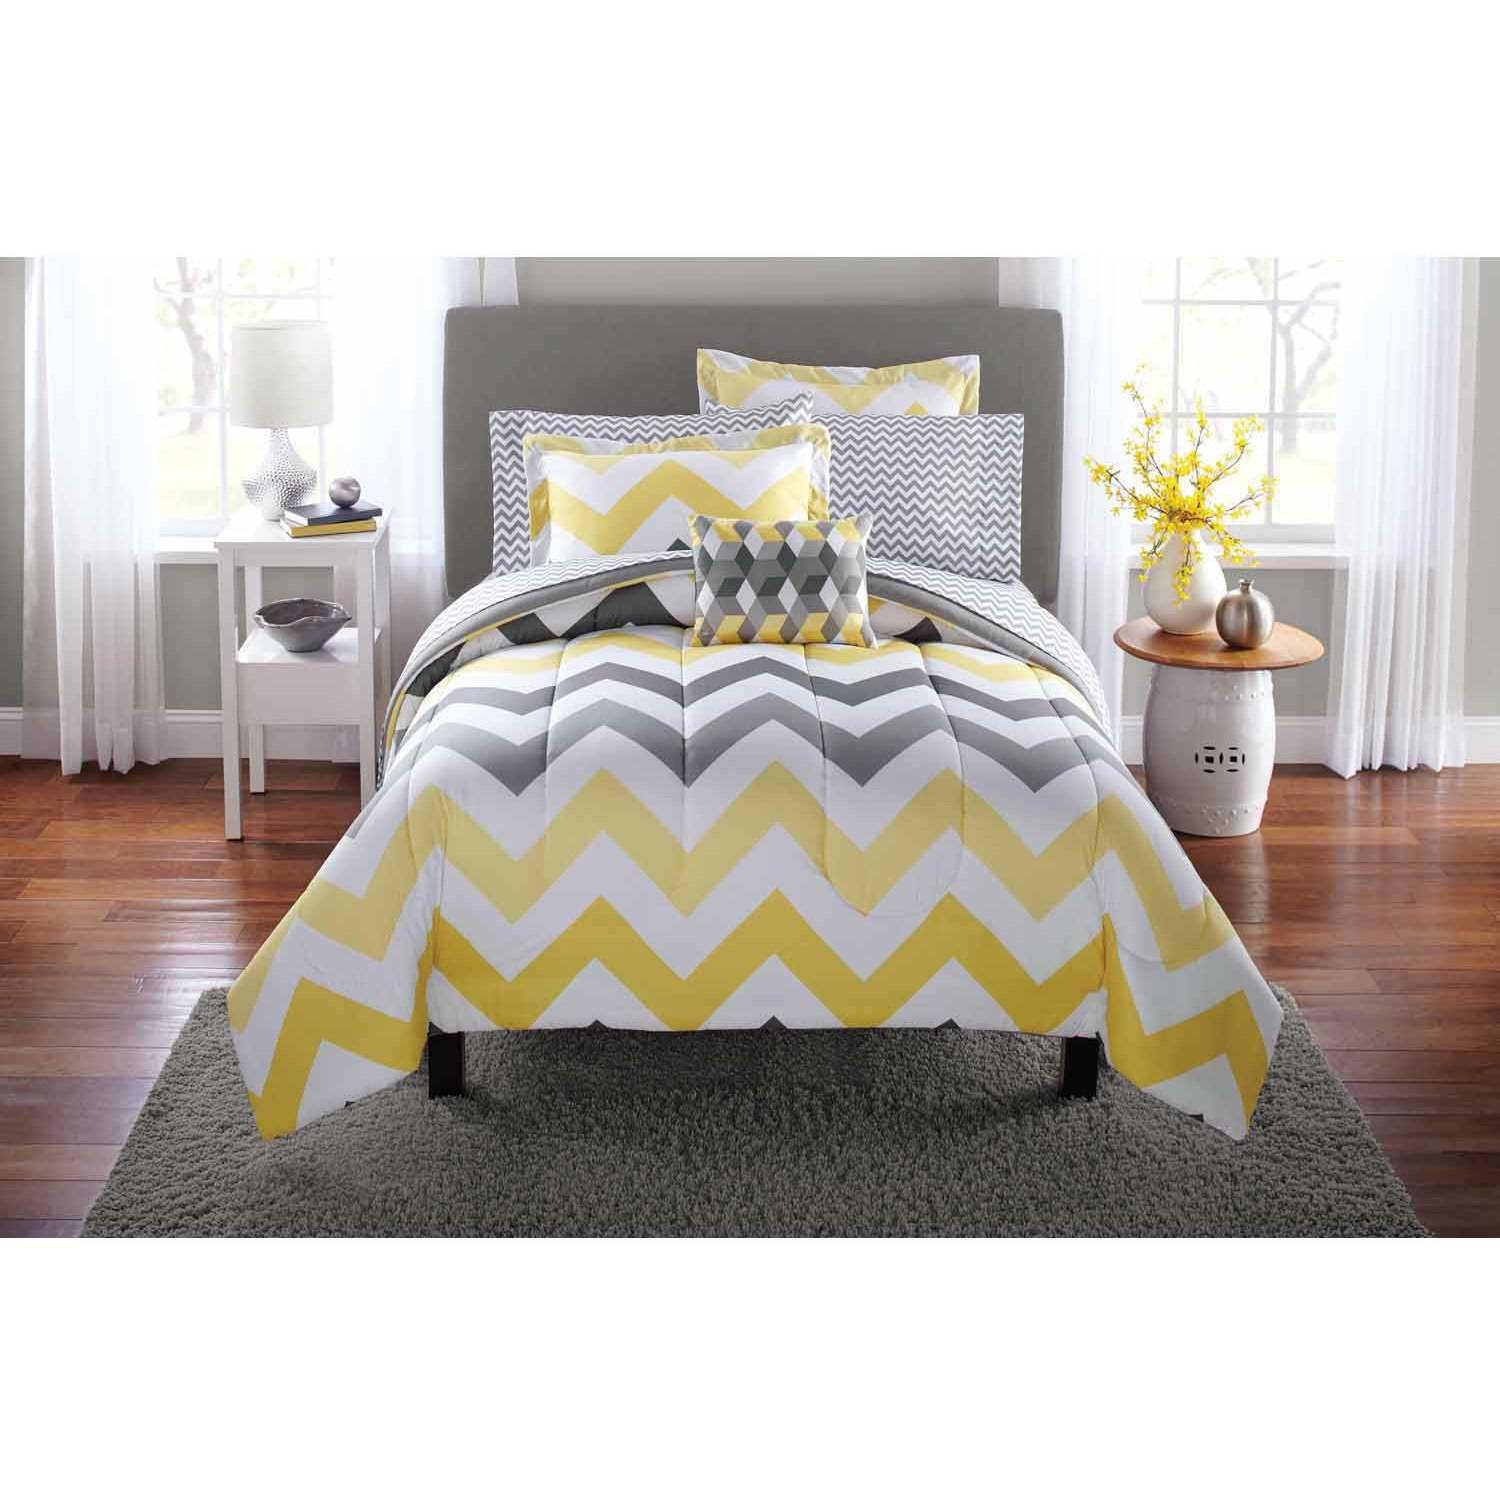 Mainstays Cabin Bed in a Bag Coordinated Bedding Set - Walmart.com